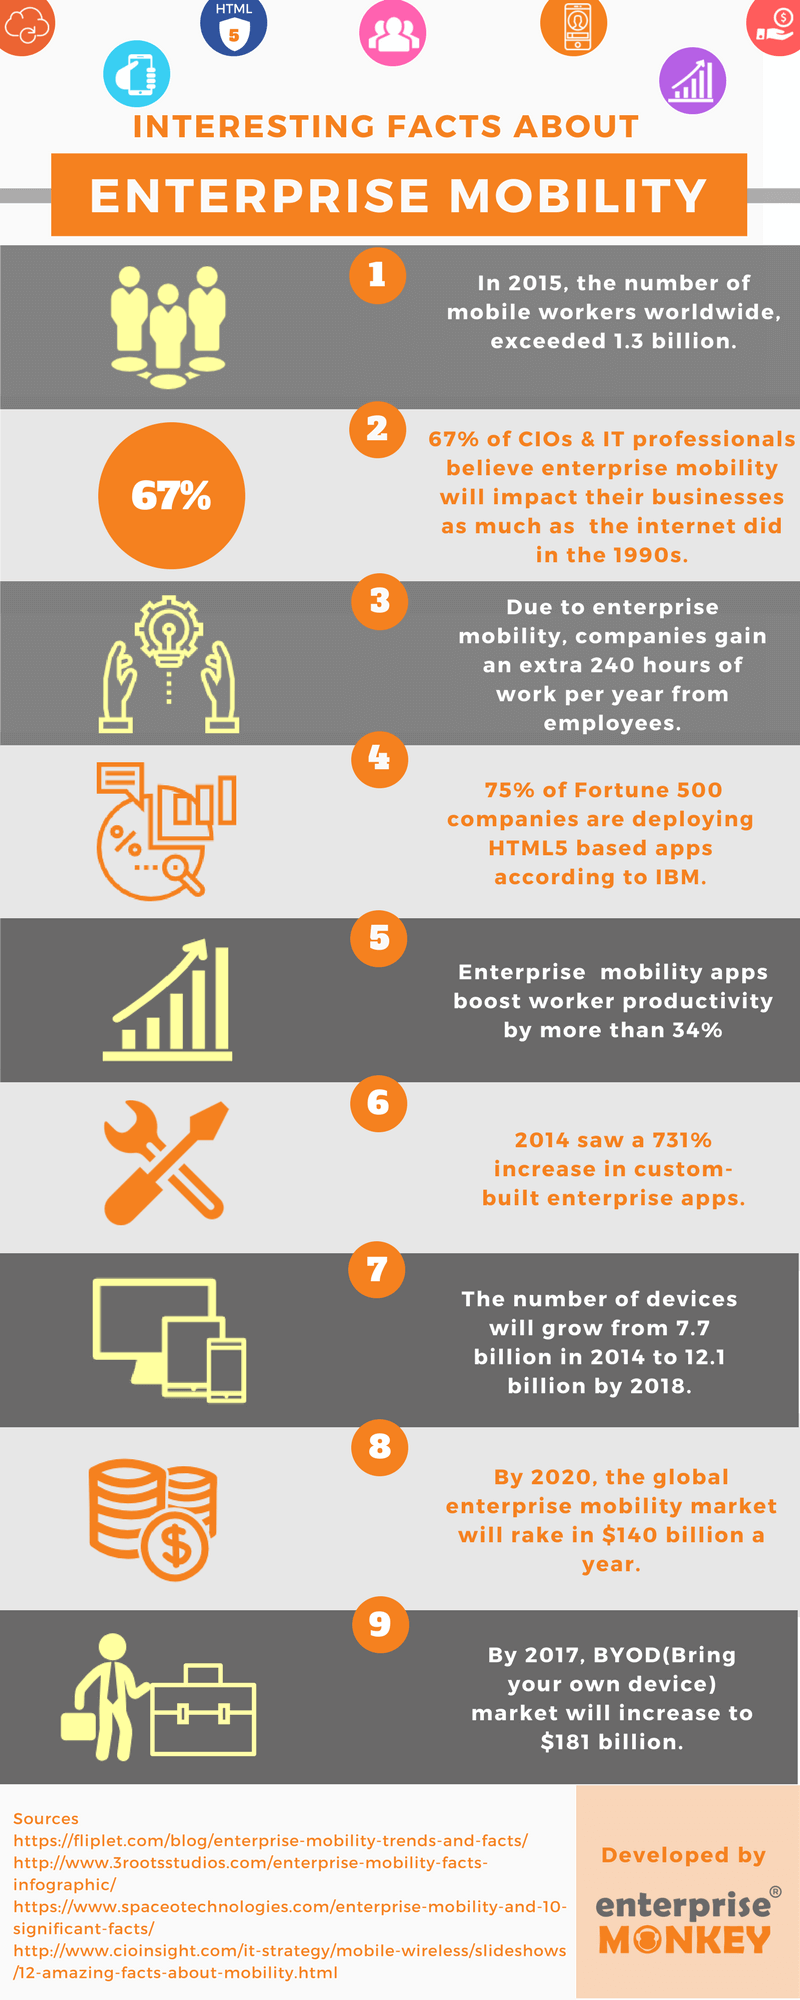 infographic - interesting facts about enterprise mobility